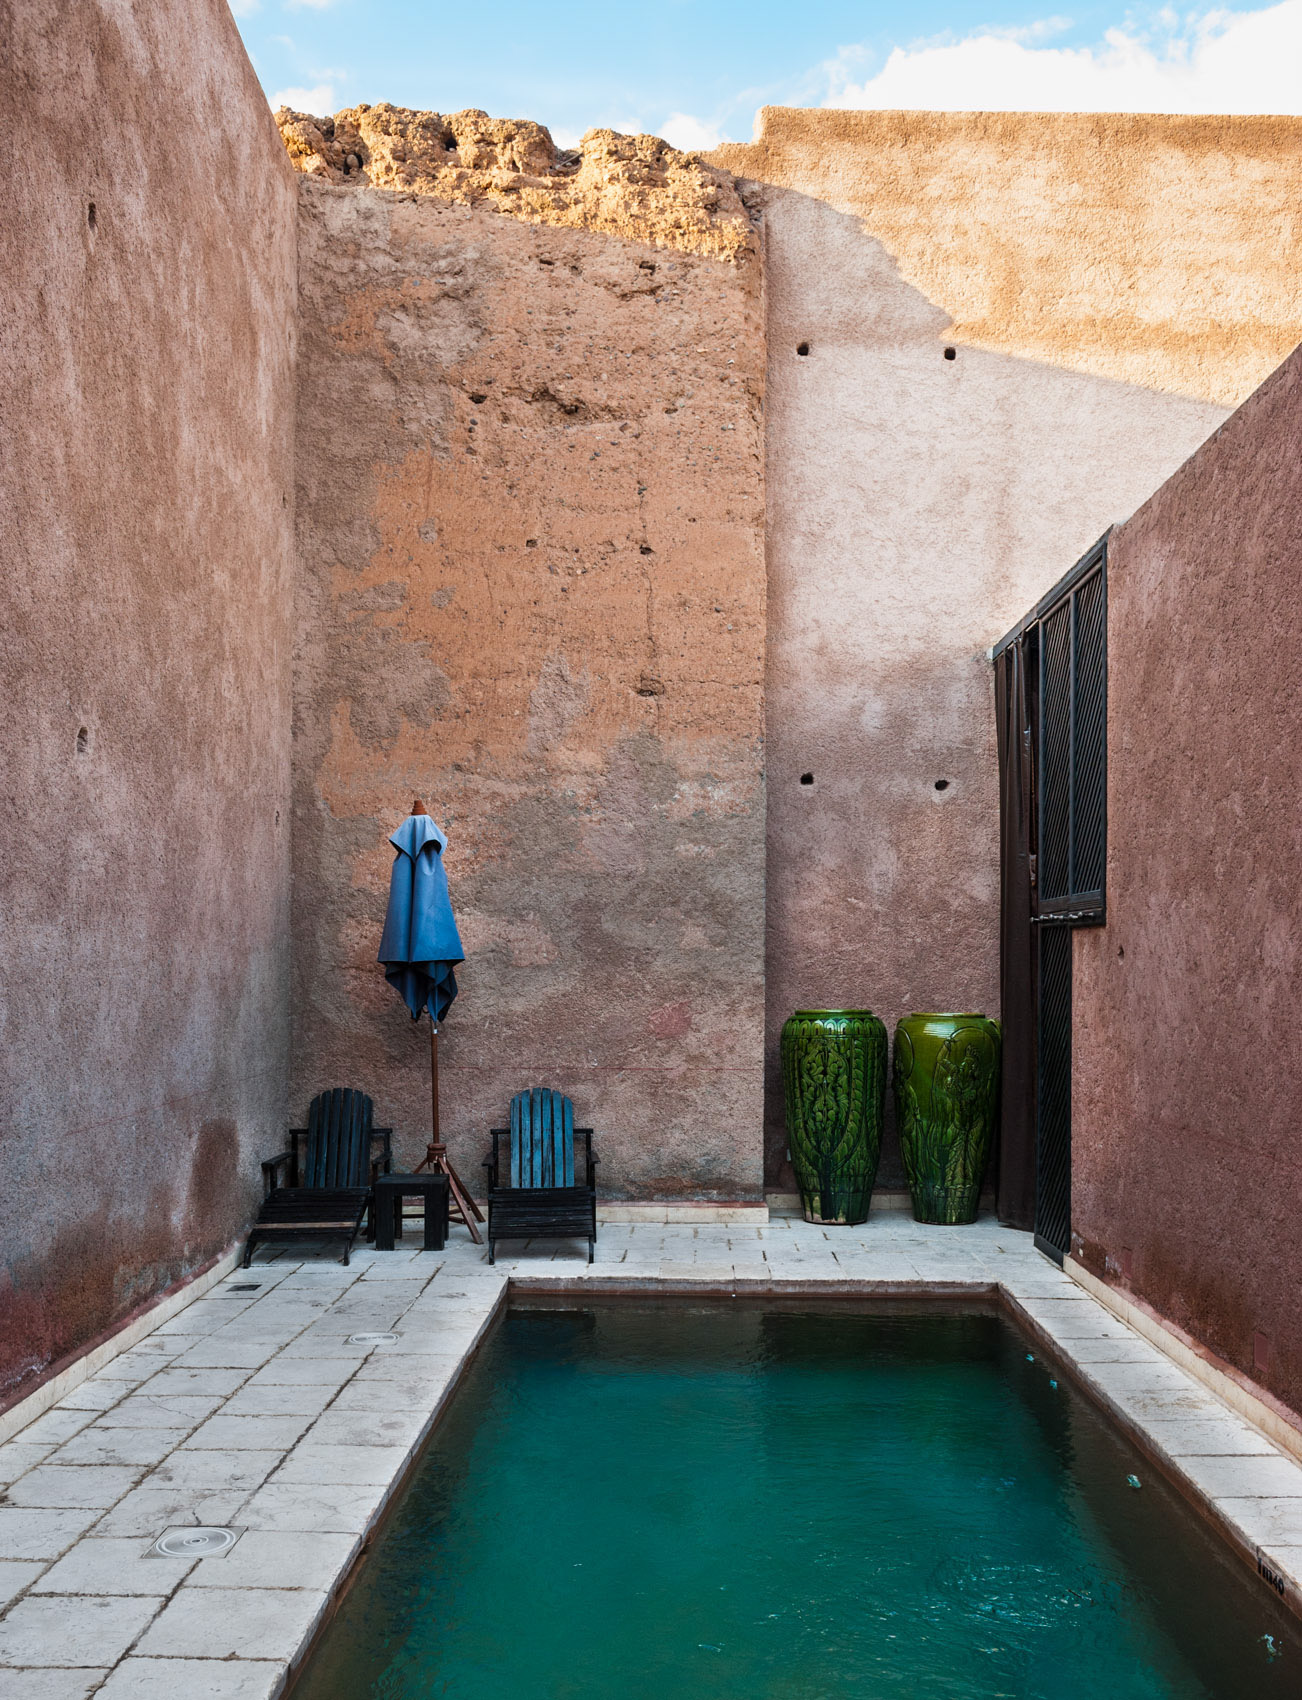 130122-364 Pool in courtyard, Marrakech